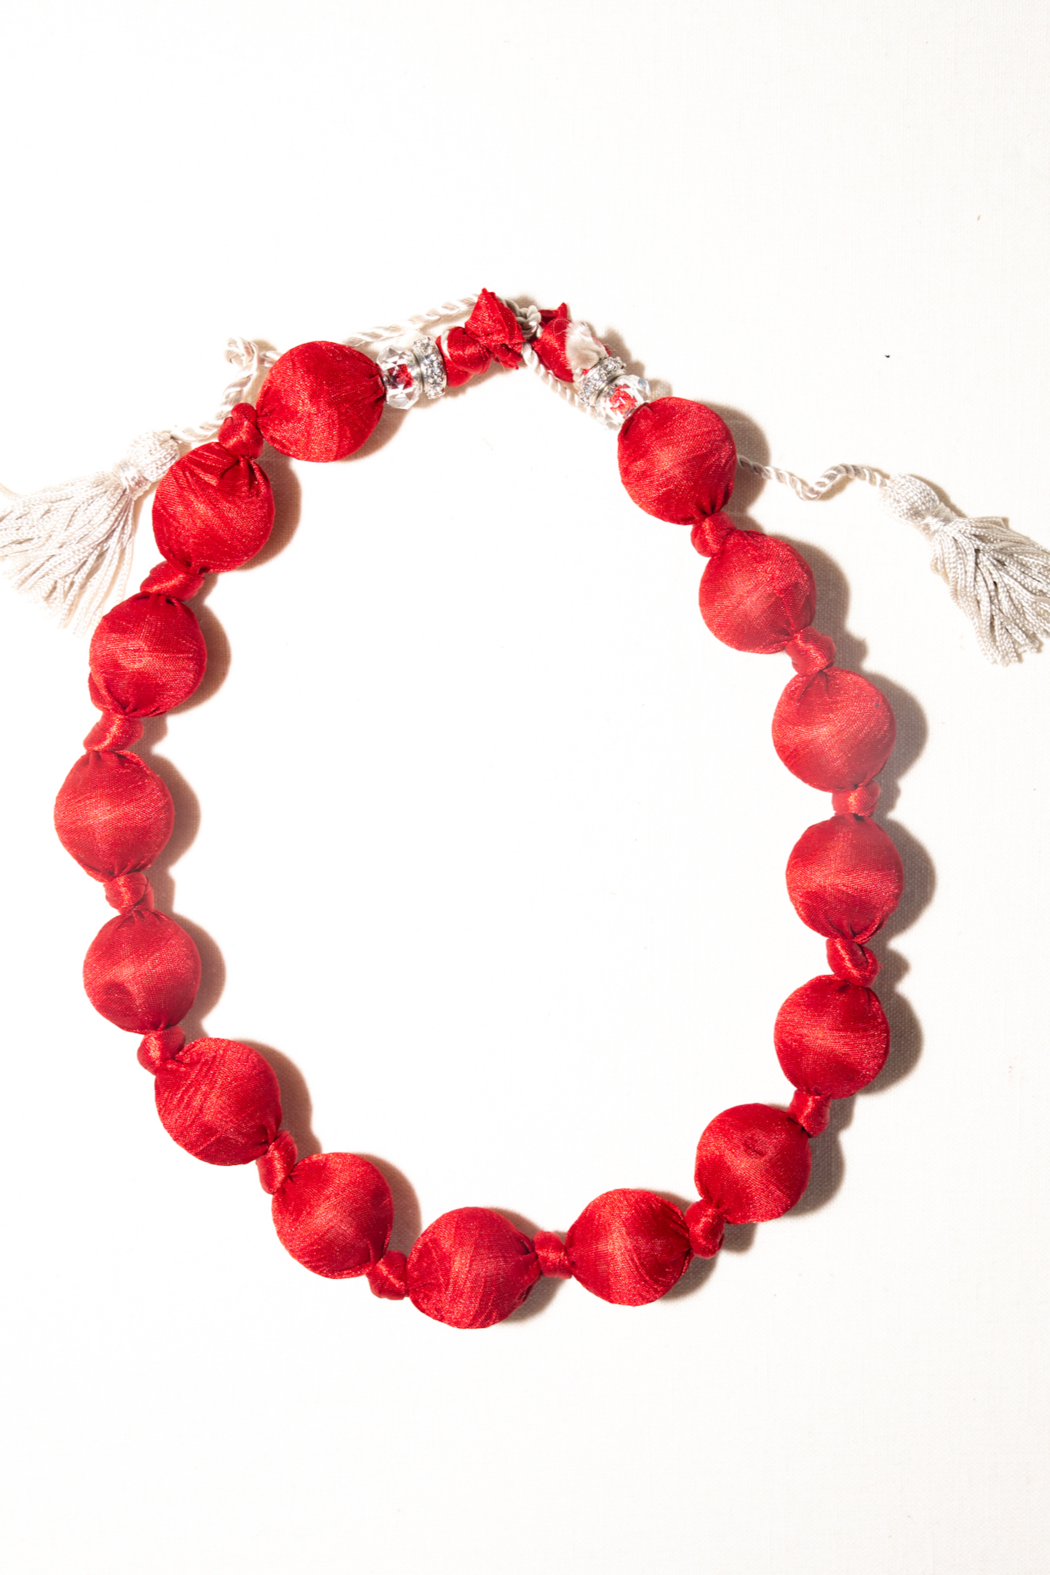 Handmade by CA artist Silky Fabric-Wrapped, Bead Necklace - Main Image